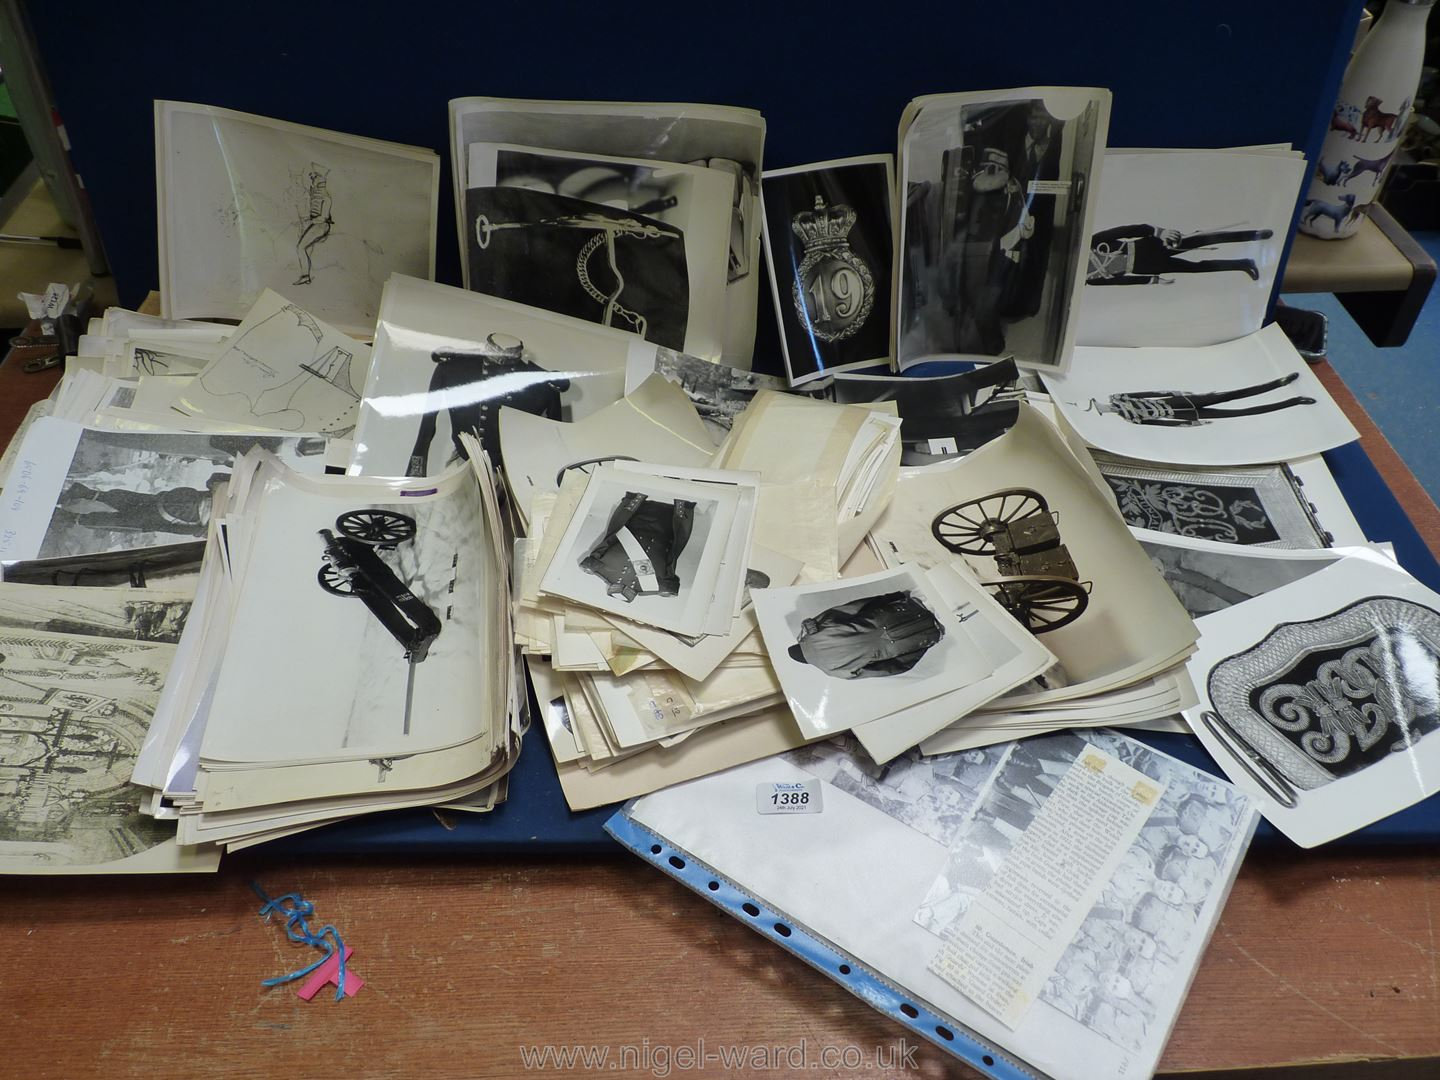 A quantity of black and white reproduction military photographs mostly of uniforms and military